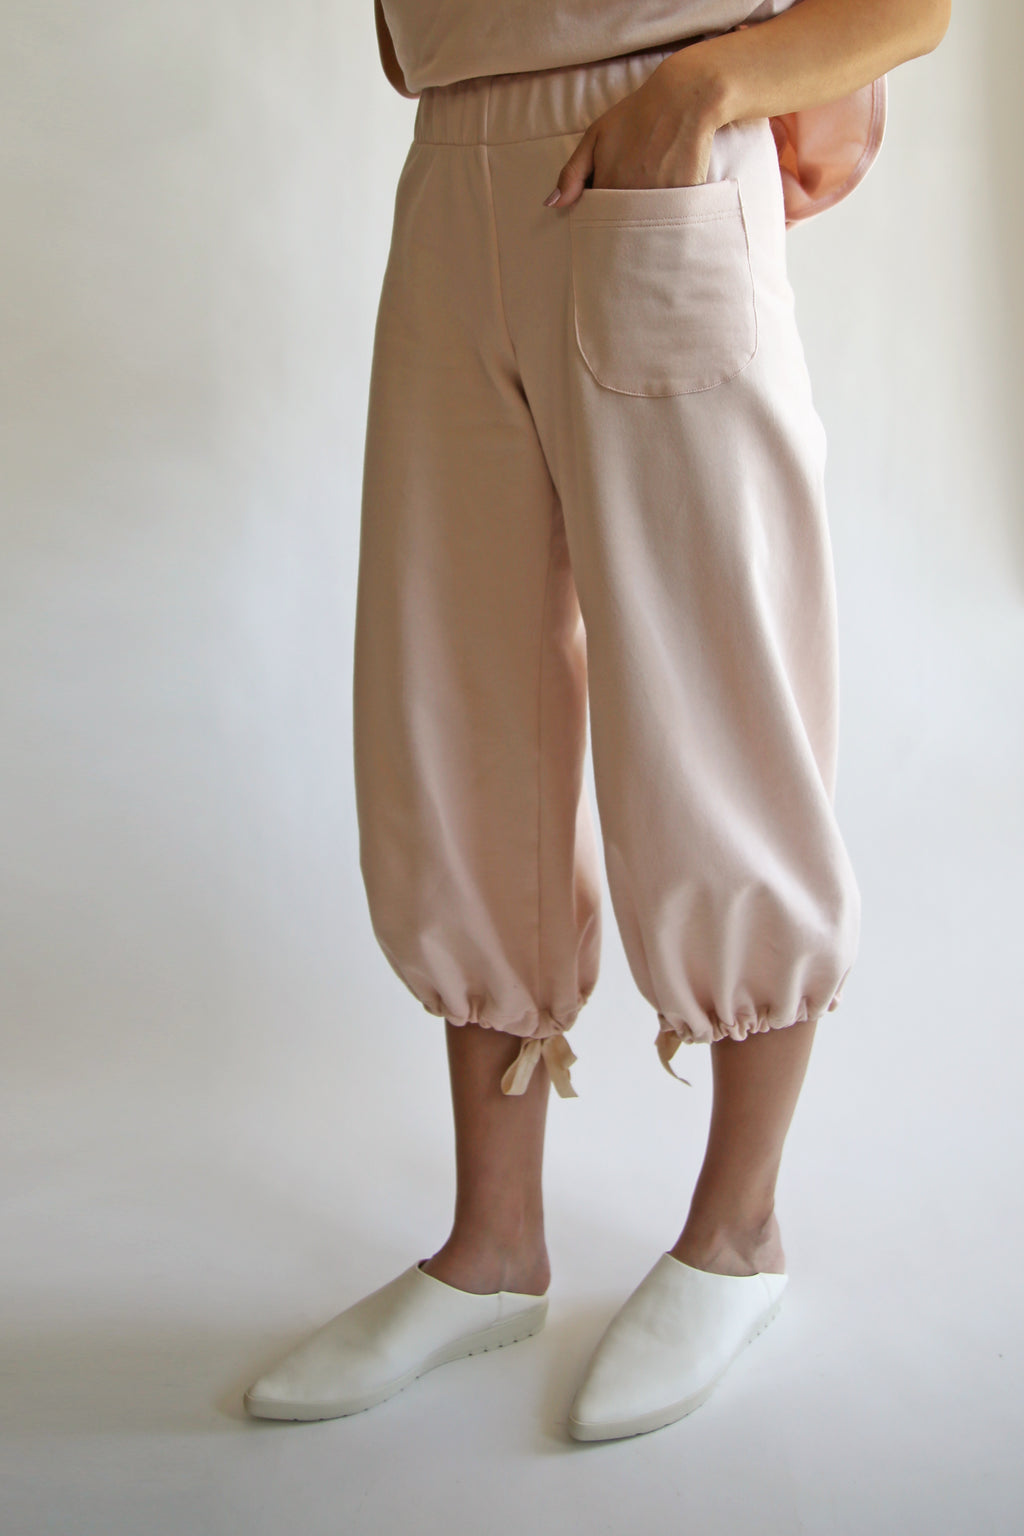 Boba Pants in Peaceful Pink Organic Fleece